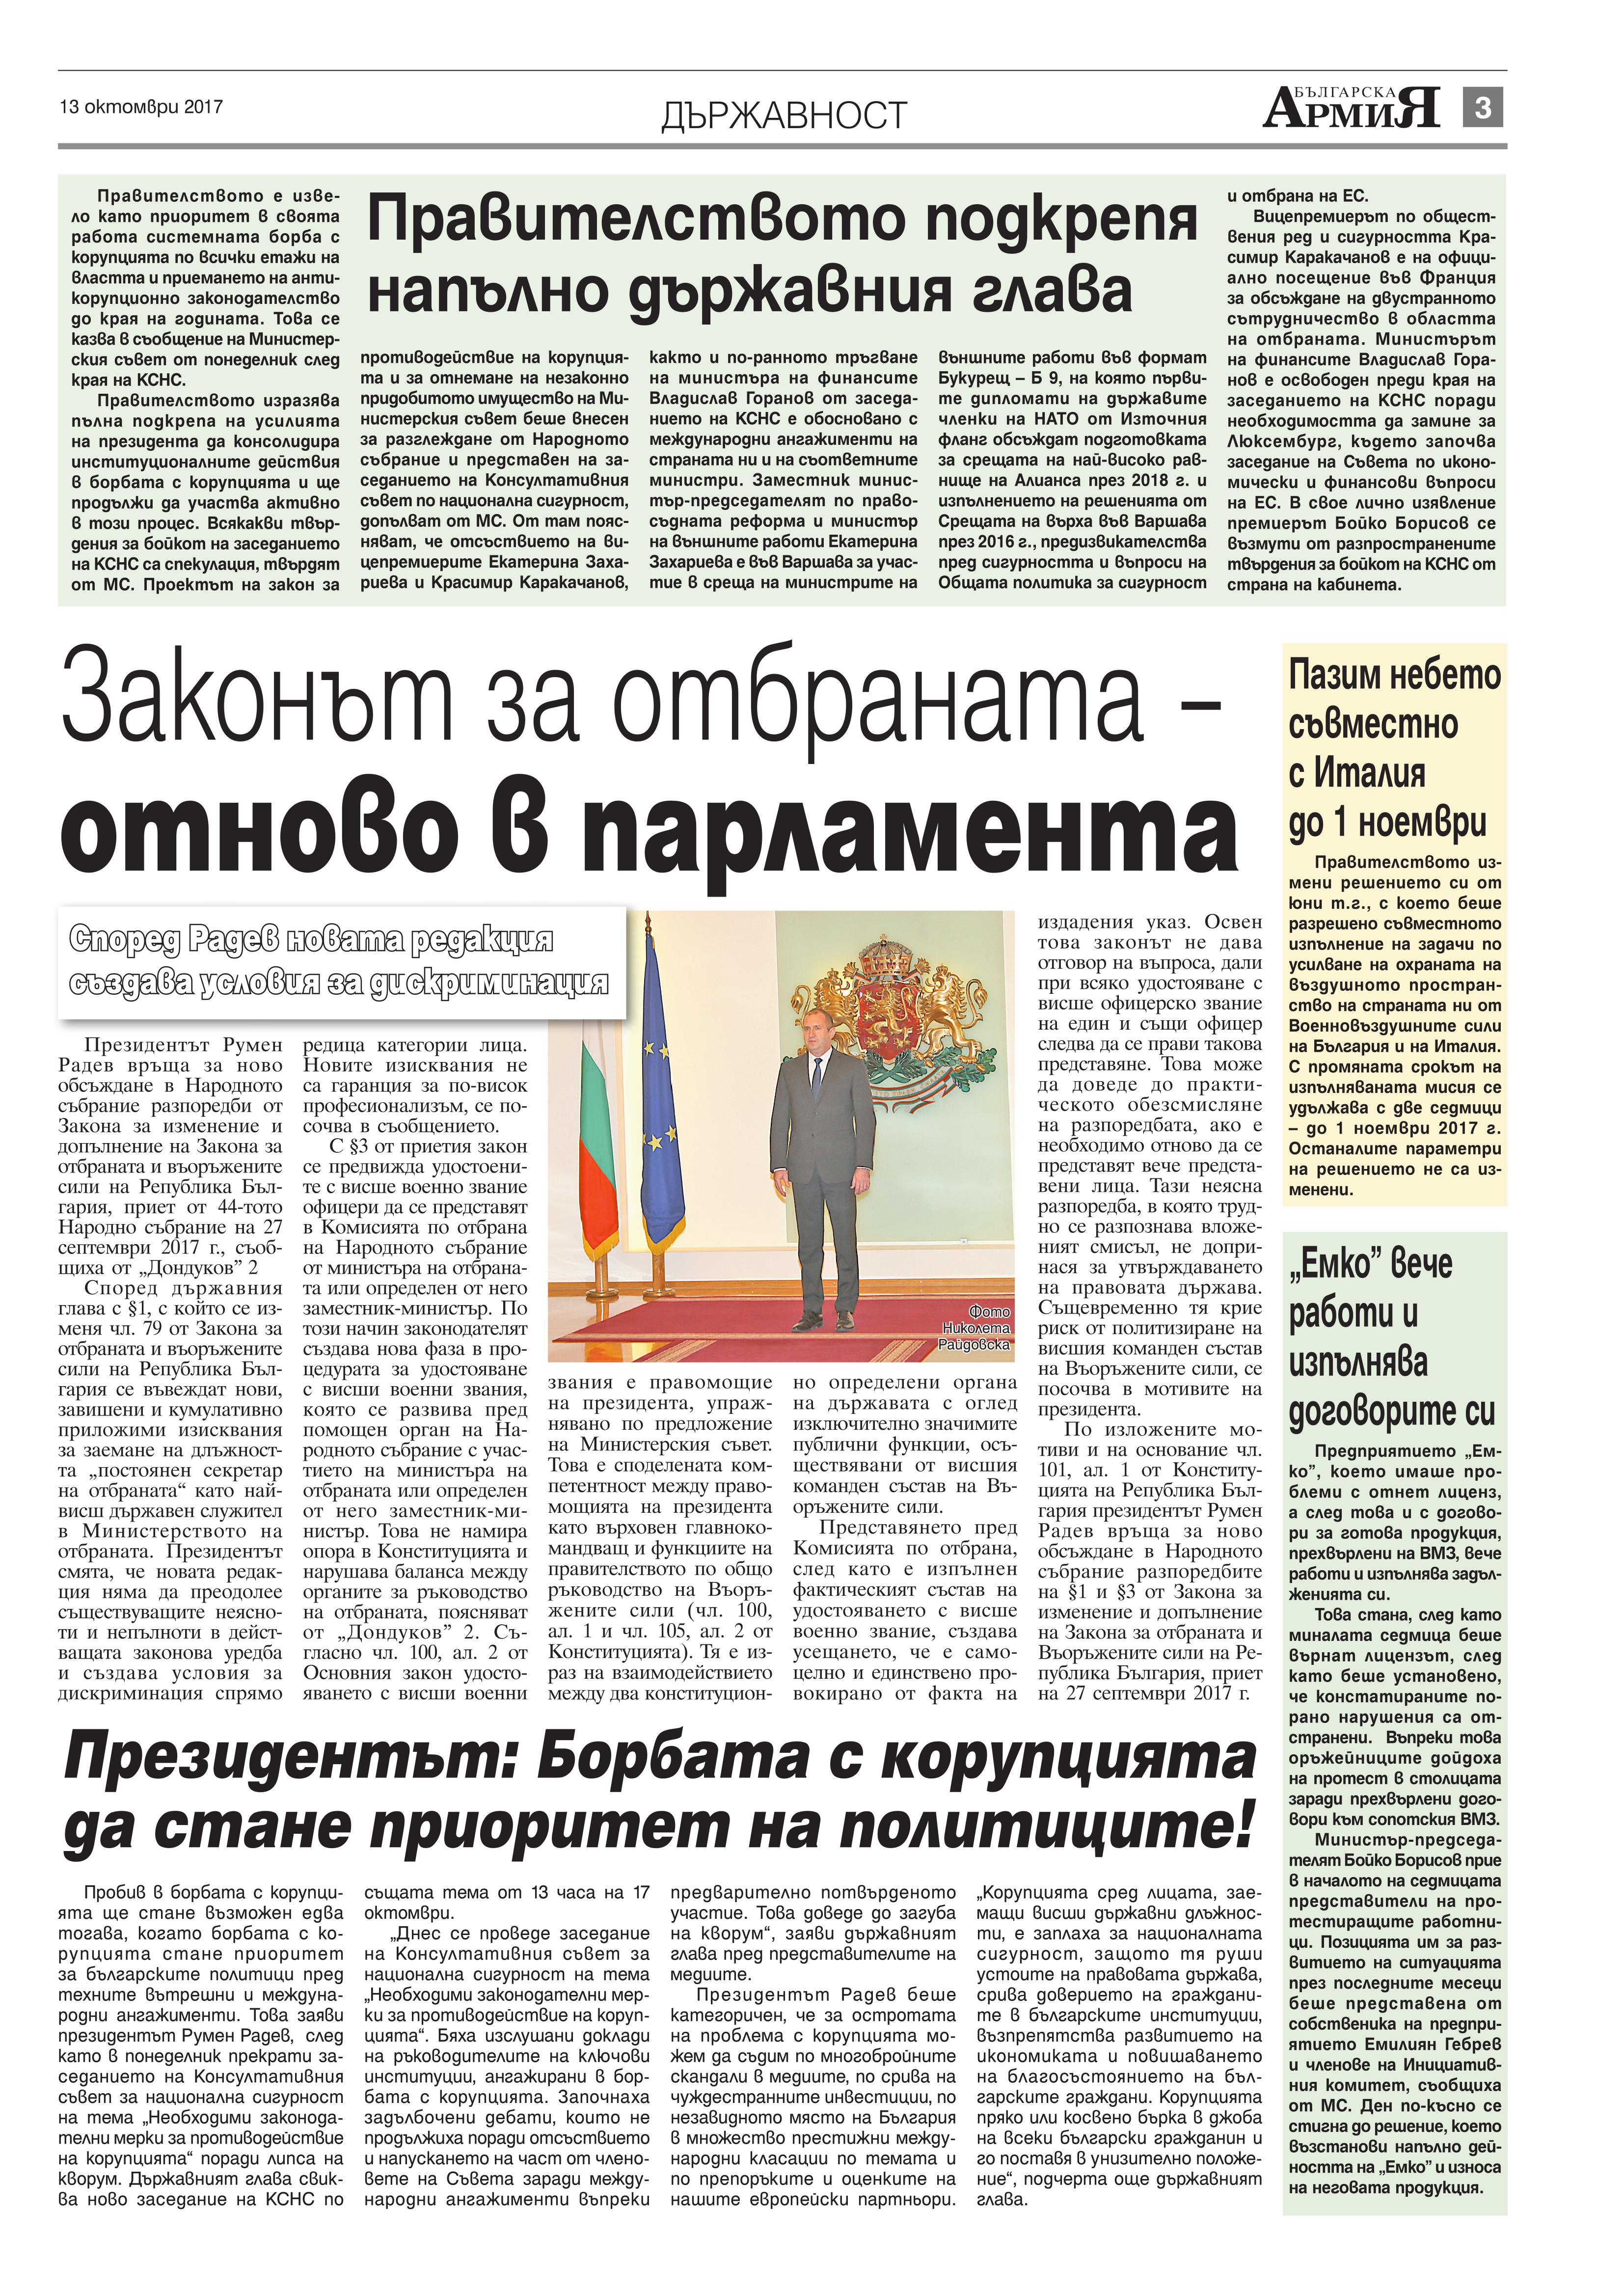 http://armymedia.bg/wp-content/uploads/2015/06/03.page1_-32.jpg